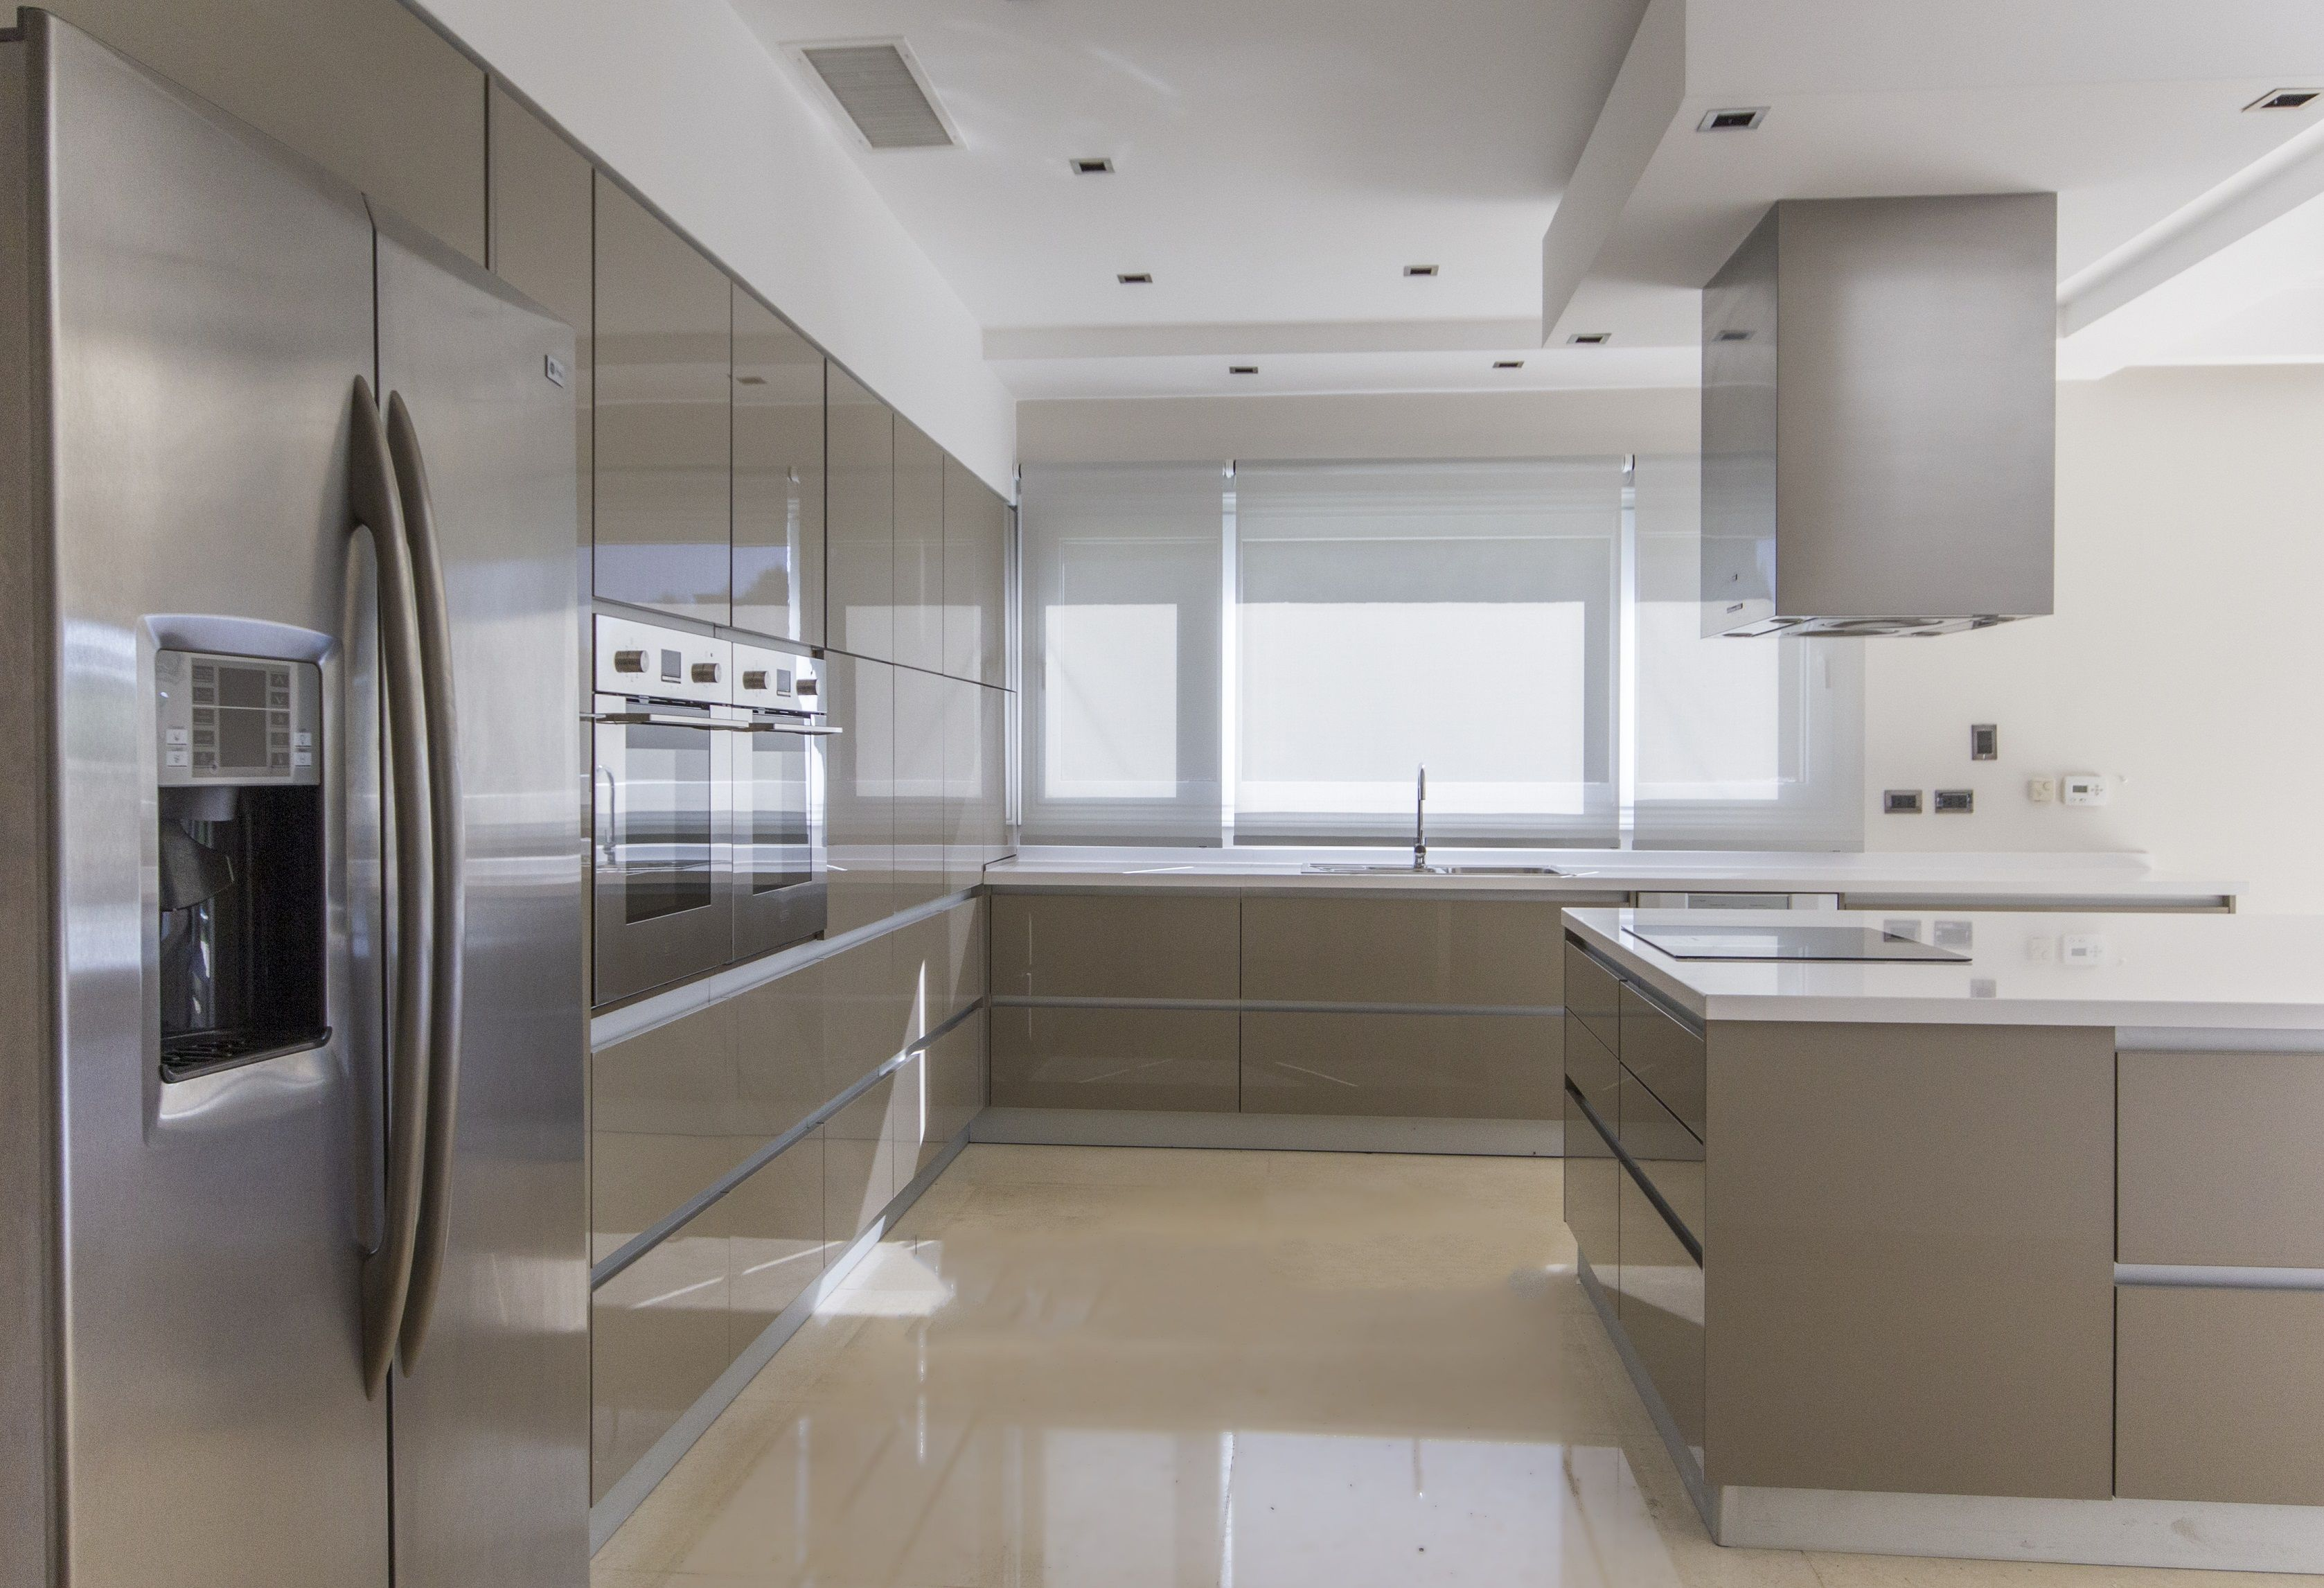 Want High Gloss Doors With High Quality Get Rauvisio Brilliant Cabinet Doors With Superior Colorfastness Seen Here In Cubanite Modern Kitchen Cozinha